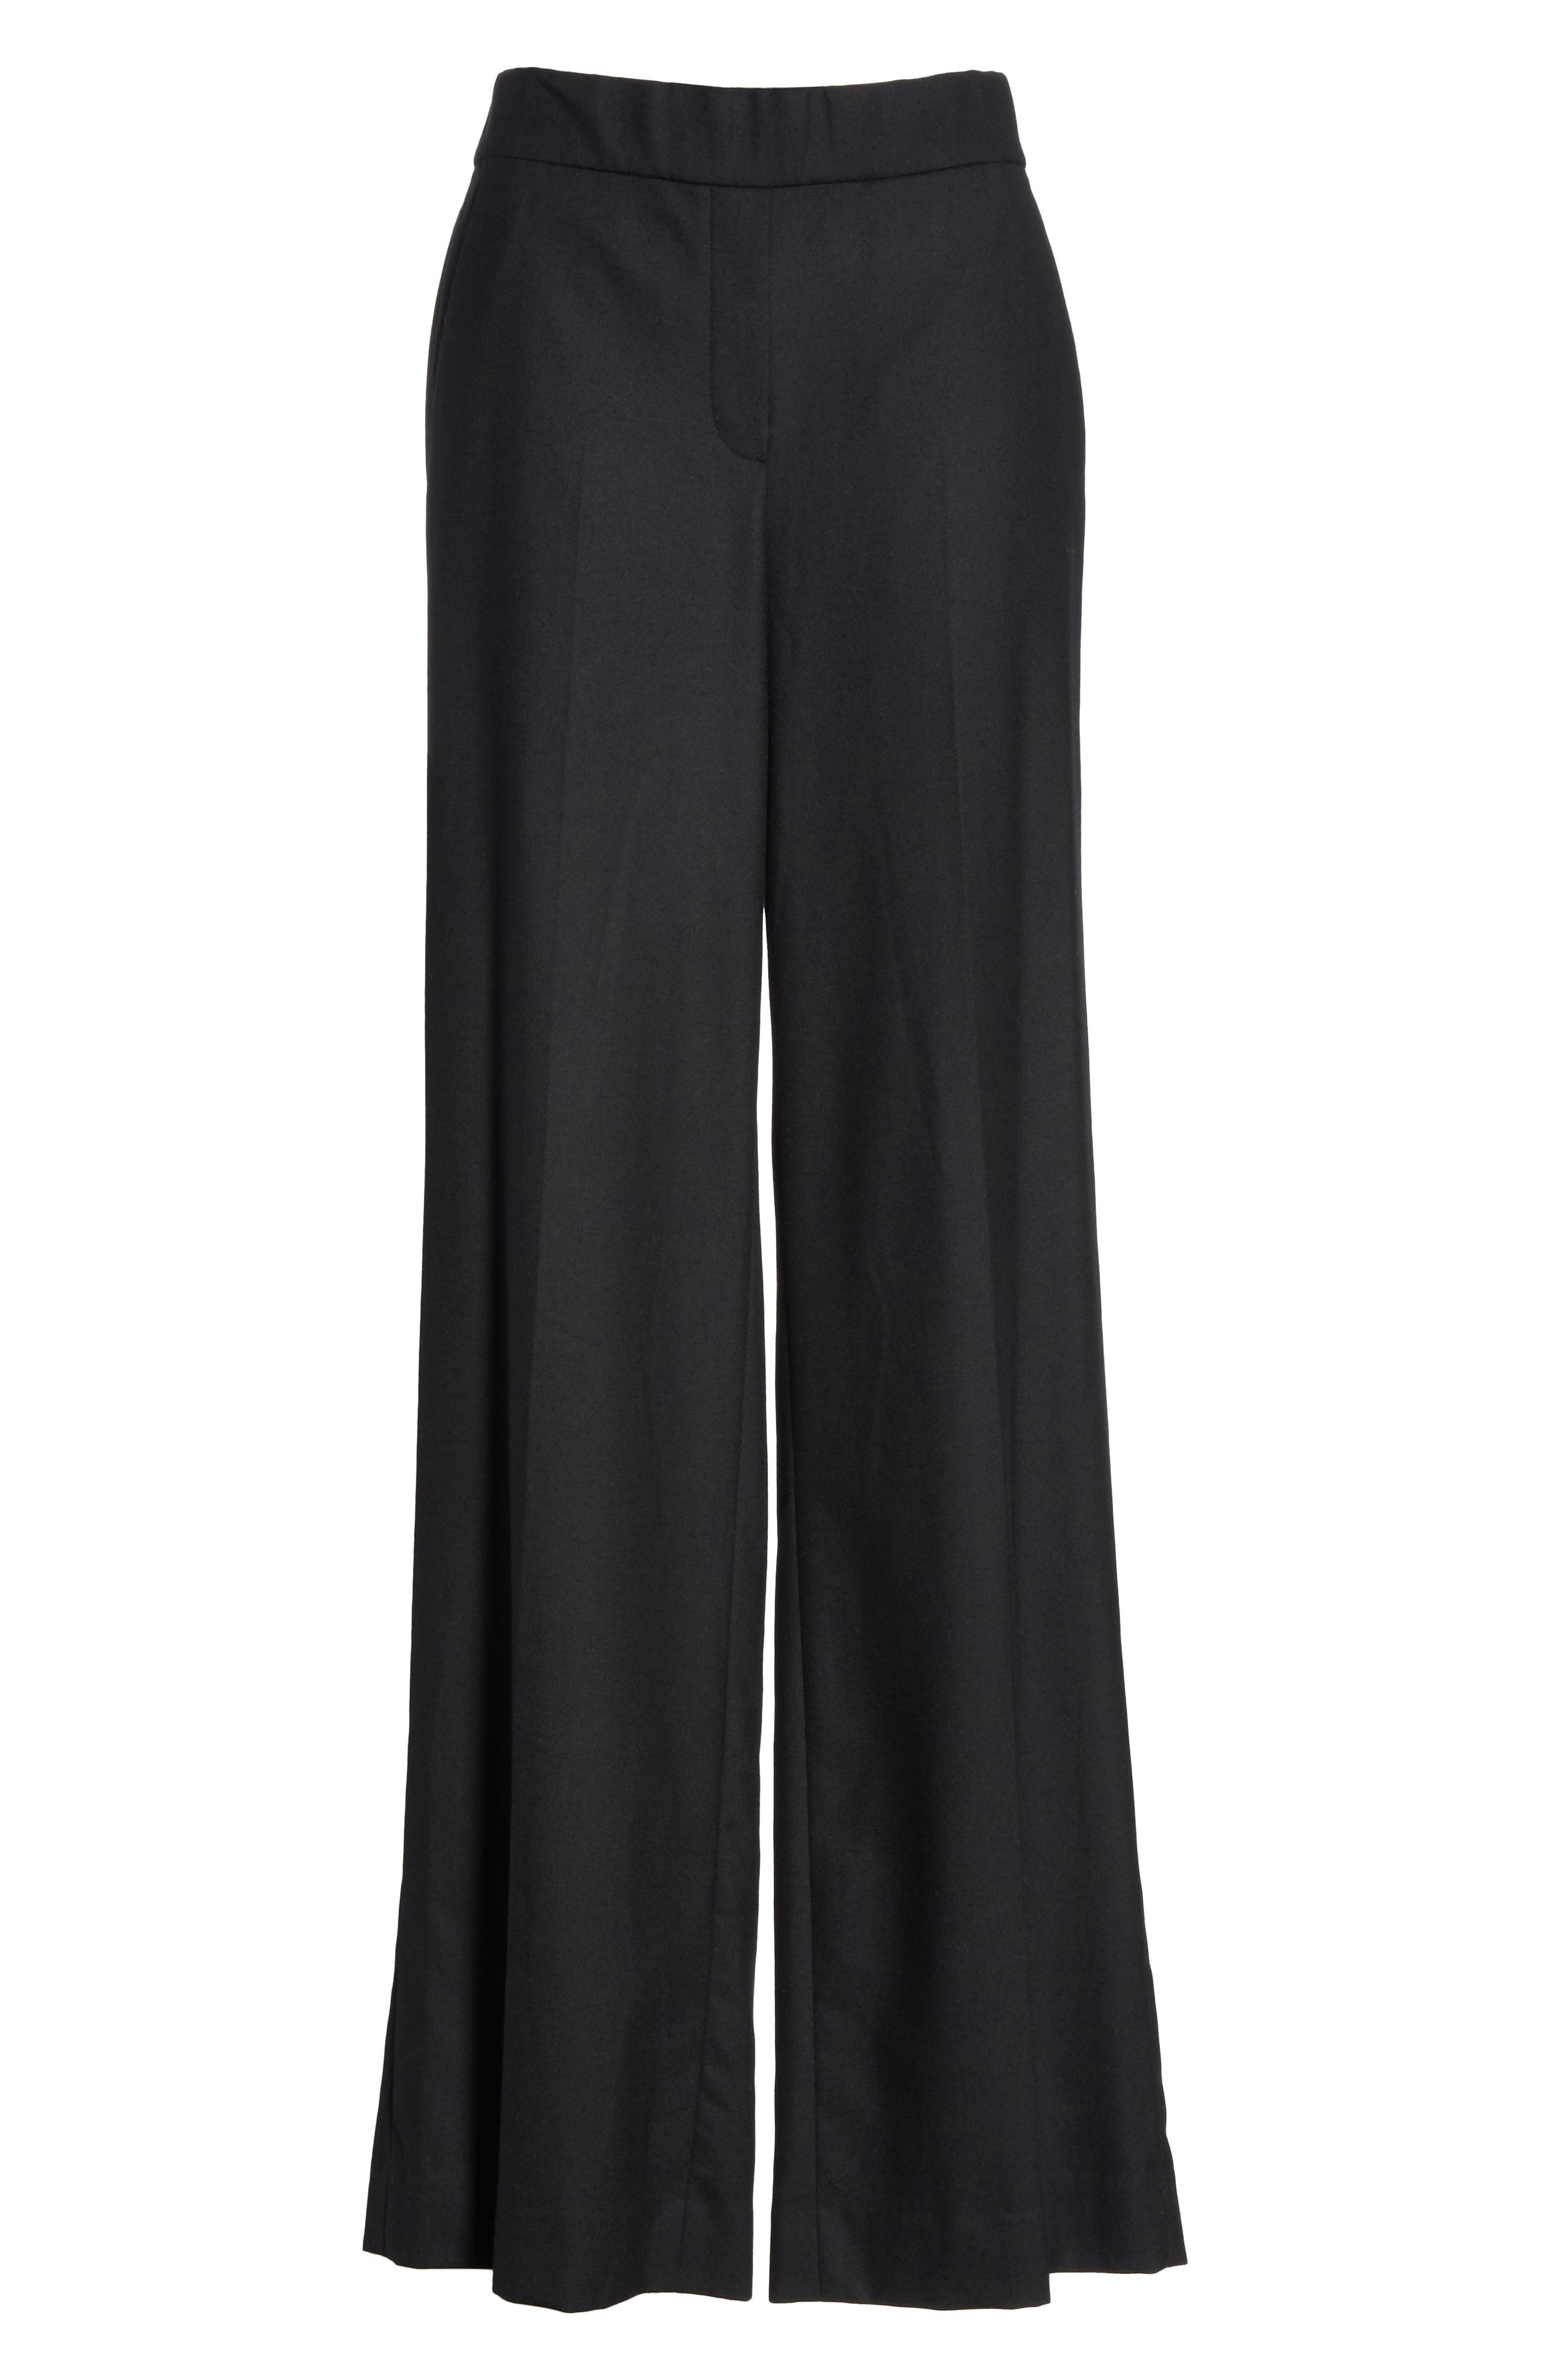 Talbert New Pure Stretch Wool Flare Leg Pants,                             Alternate thumbnail 6, color,                             001